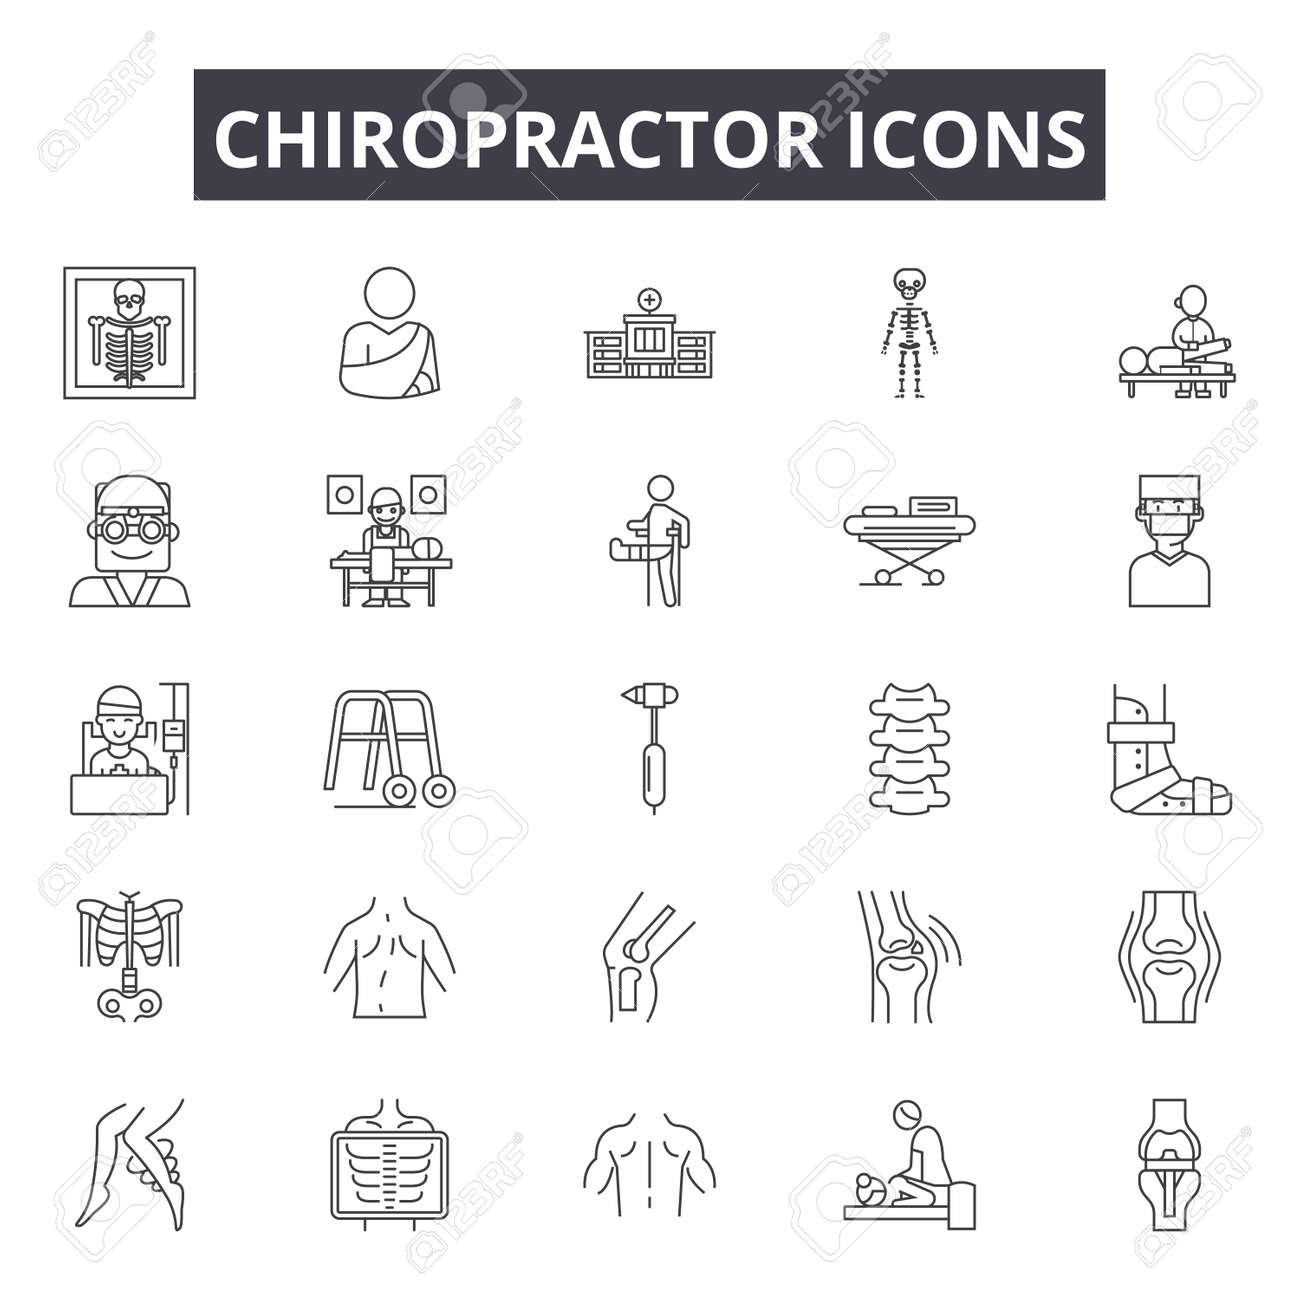 Chiropractor line icons for web and mobile. Editable stroke signs. Chiropractor outline concept illustrations - 119391312